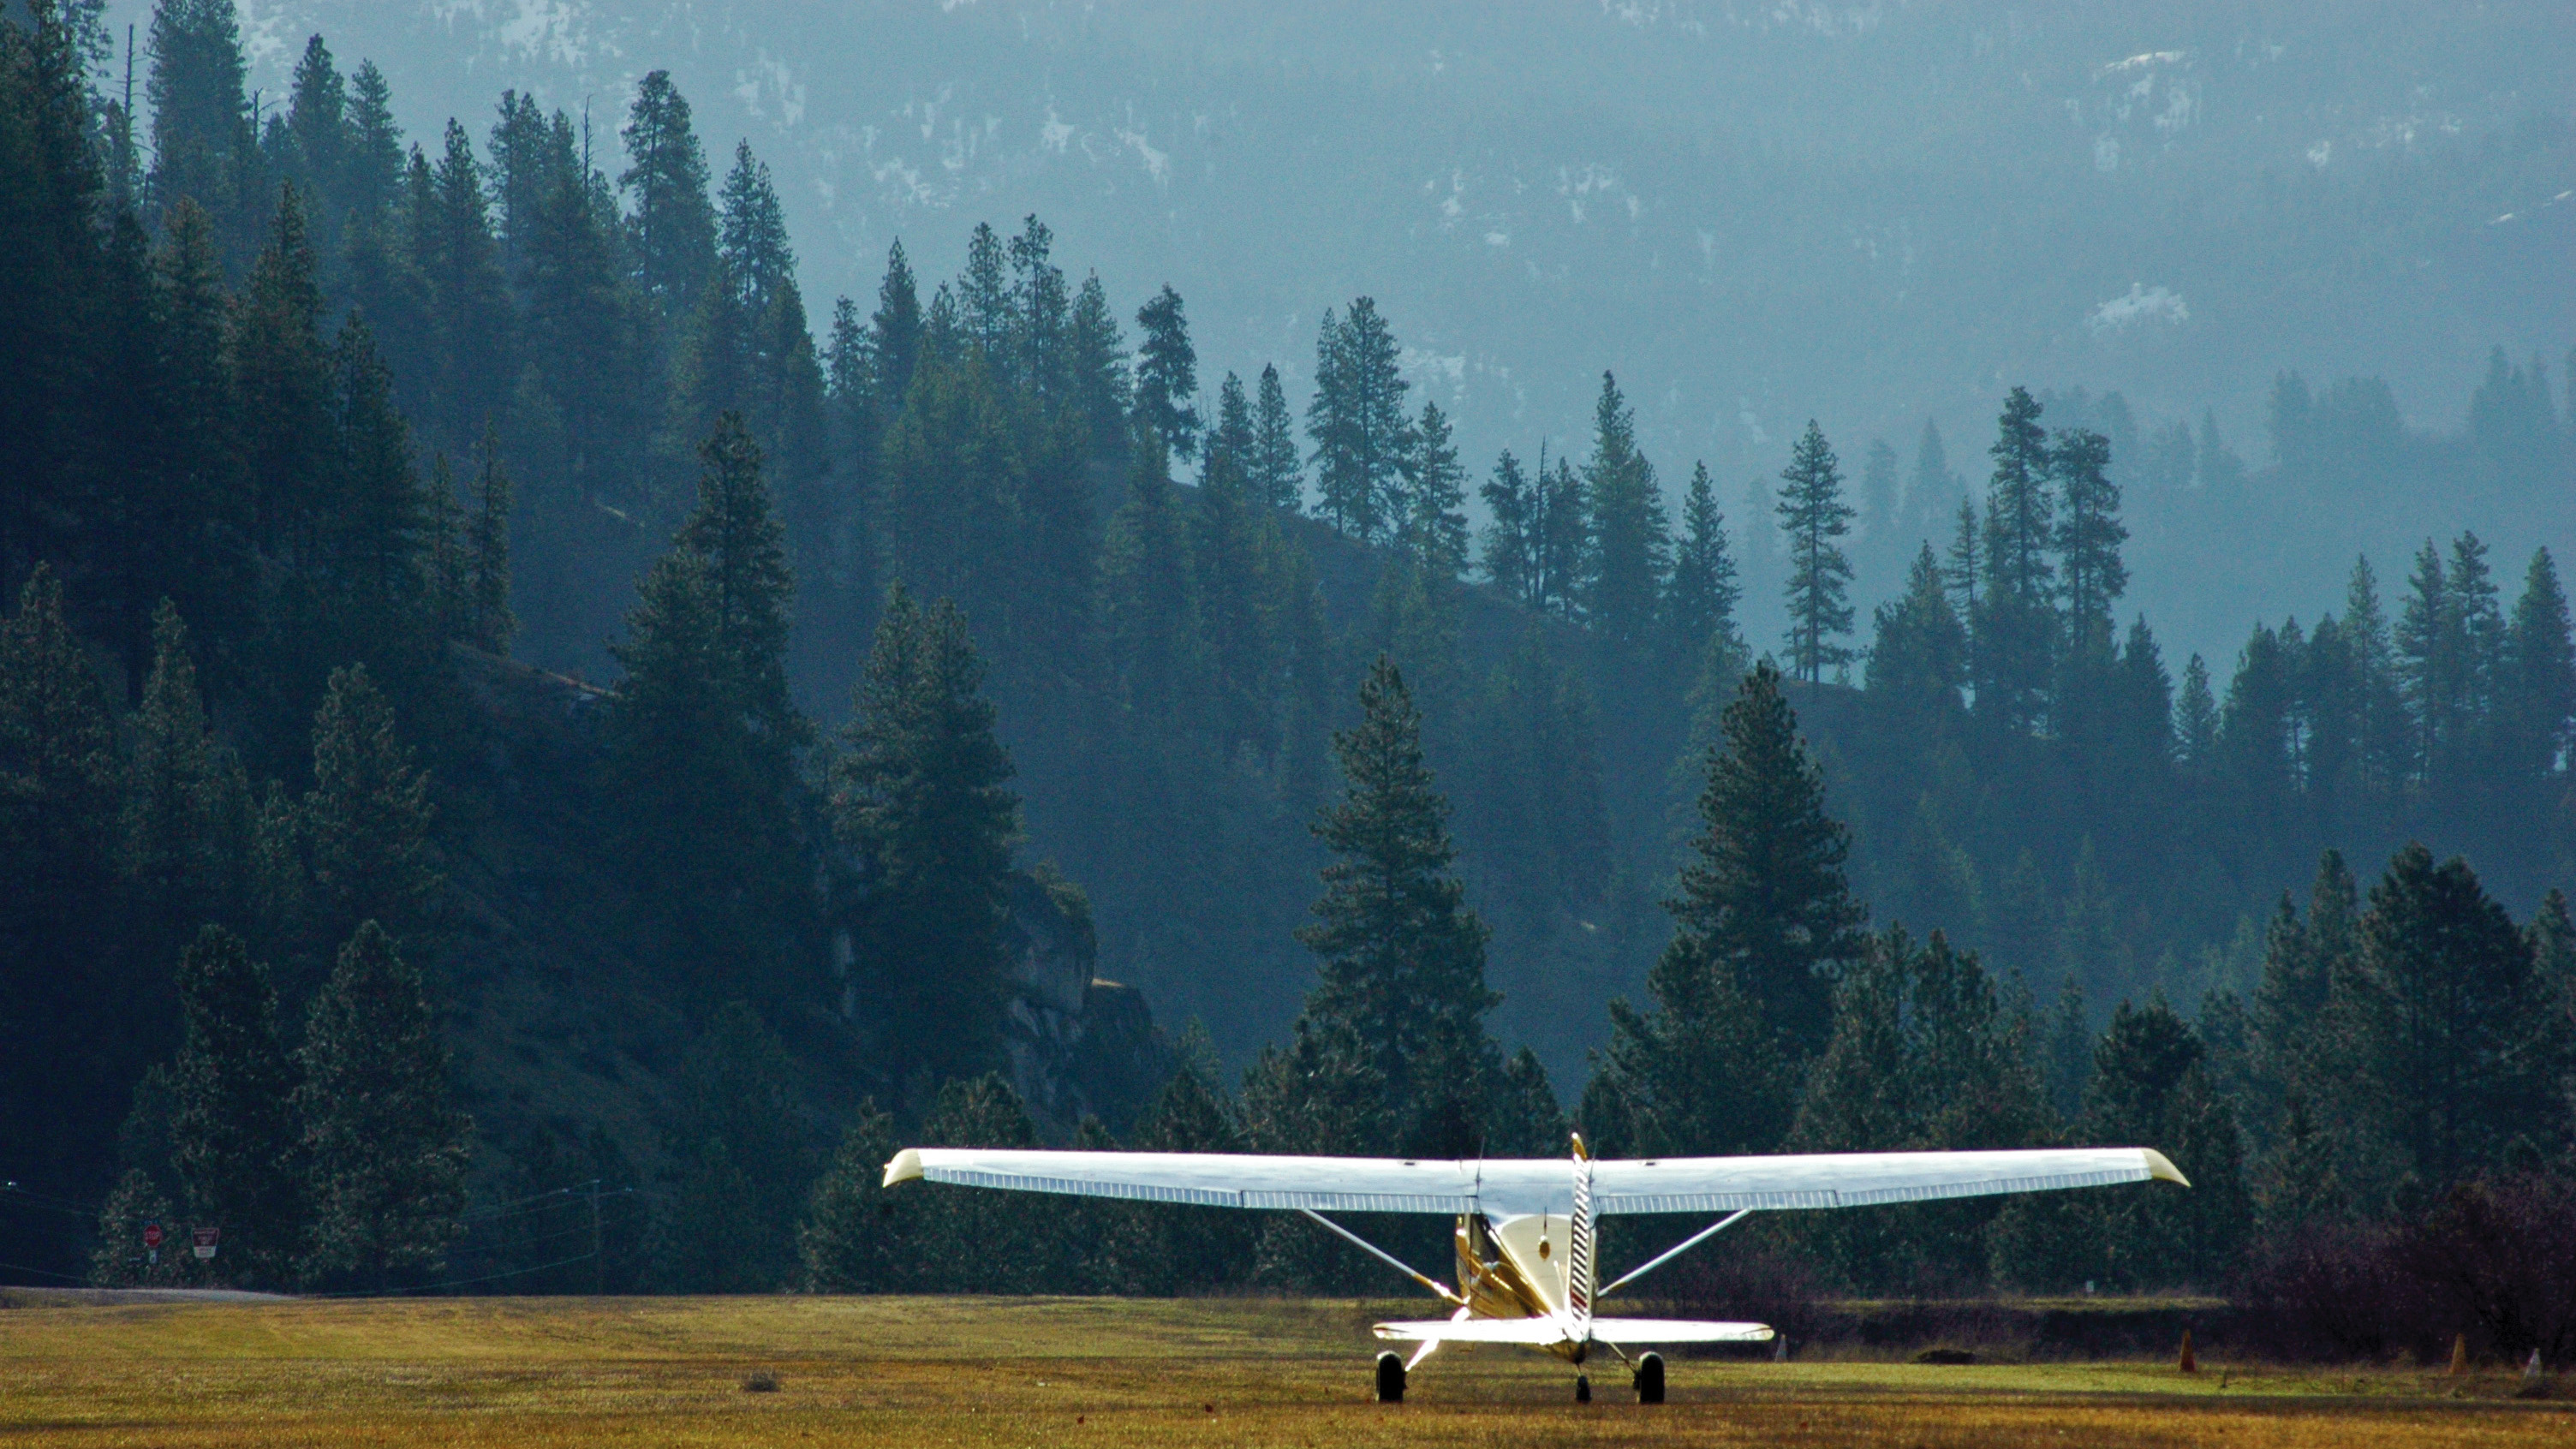 A Cessna 185 backtaxis during the annual Cessna 180/185 fly-in. Photo courtesy of Crista V. Worthy.